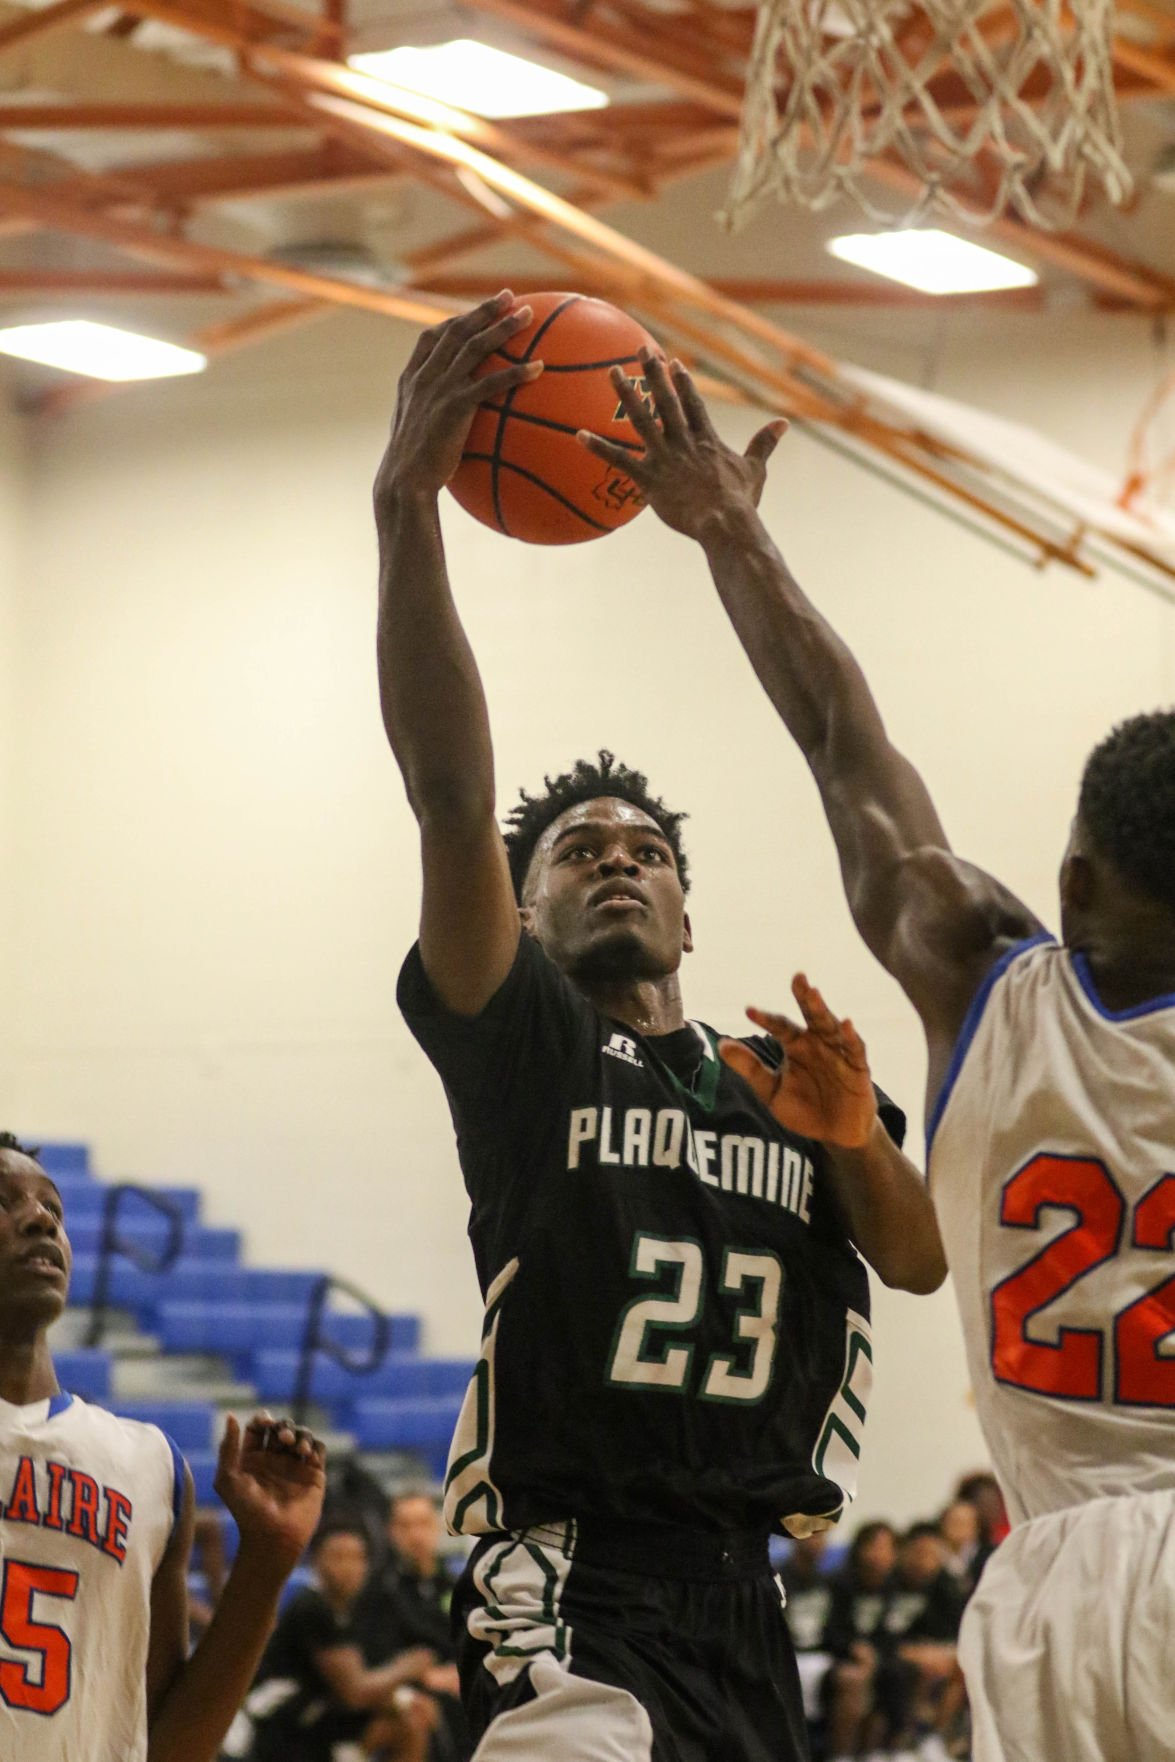 Plaquemine vs Belaire Basketball